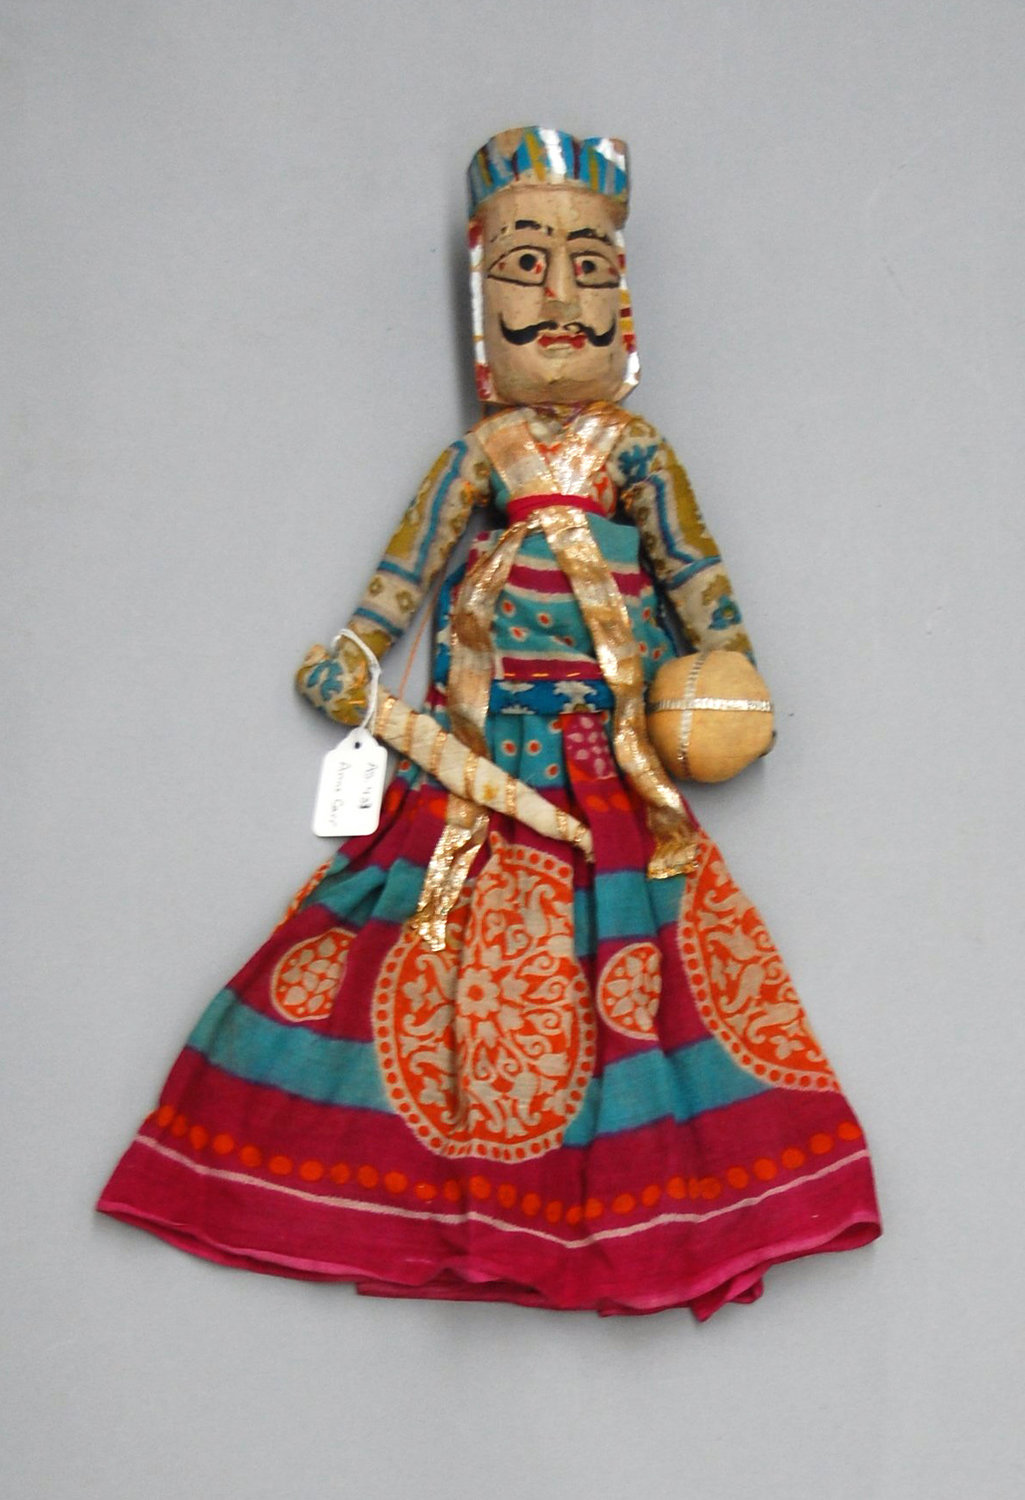 Un guerrier rajasthani, une marionnette à fils, <em>kathputli</em>, du Rajasthan, en Inde, hauteur: 46 <em>c</em>m. Colle<em>c</em>tion : Center for Puppetry Arts (Atlanta, Géorgie, États-Unis). Photo réproduite avec l'aimable autorisation de Center for Puppetry Arts